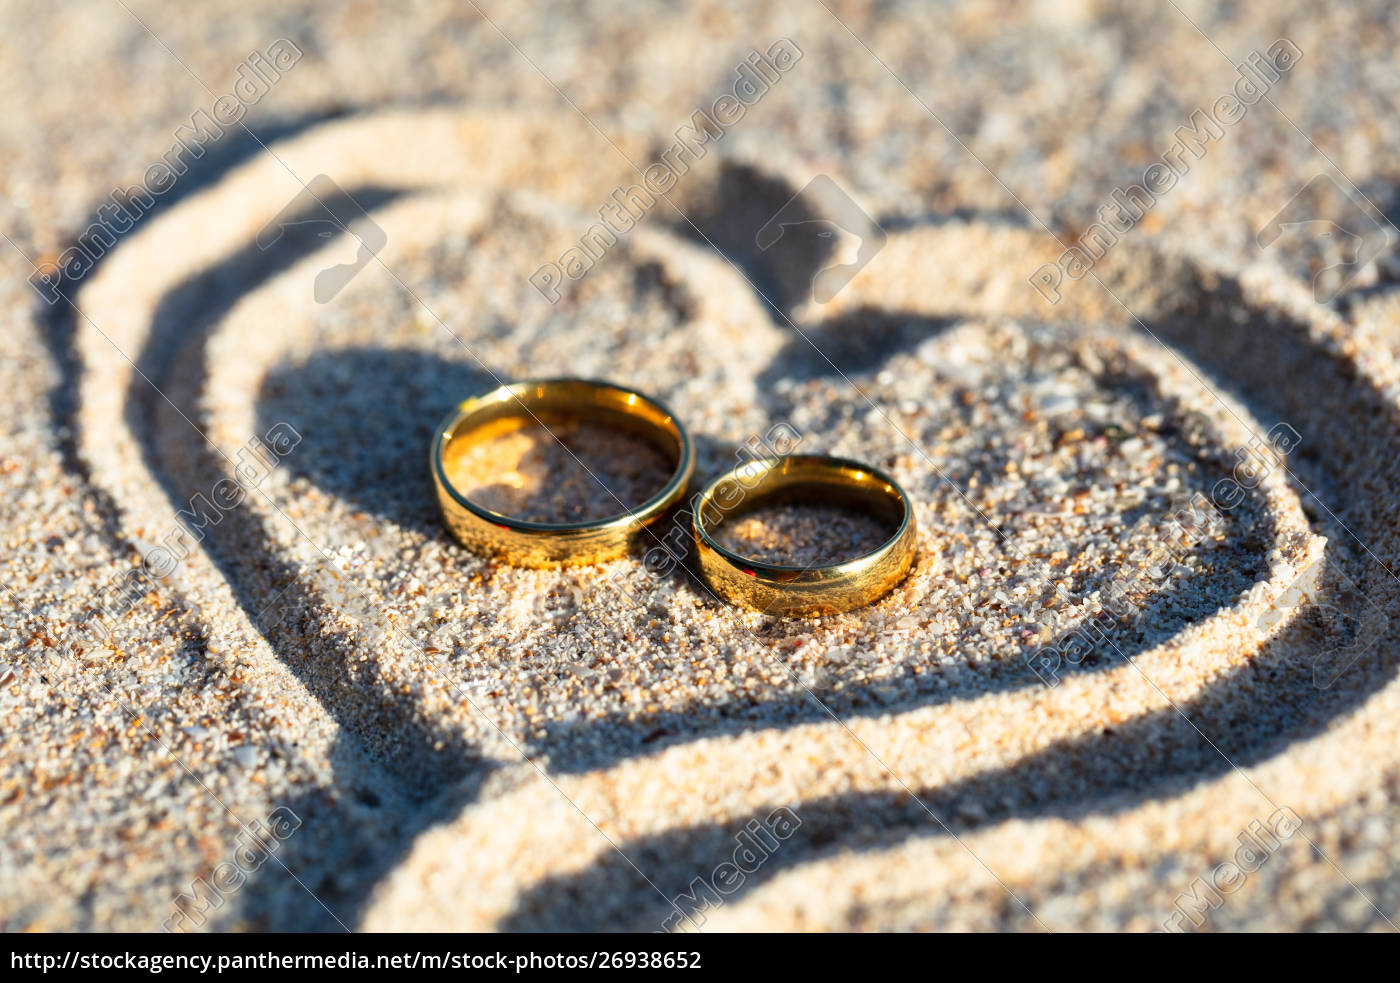 Golden Wedding Rings Inside The Heart Shape On Sand Royalty Free Photo 26938652 Panthermedia Stock Agency